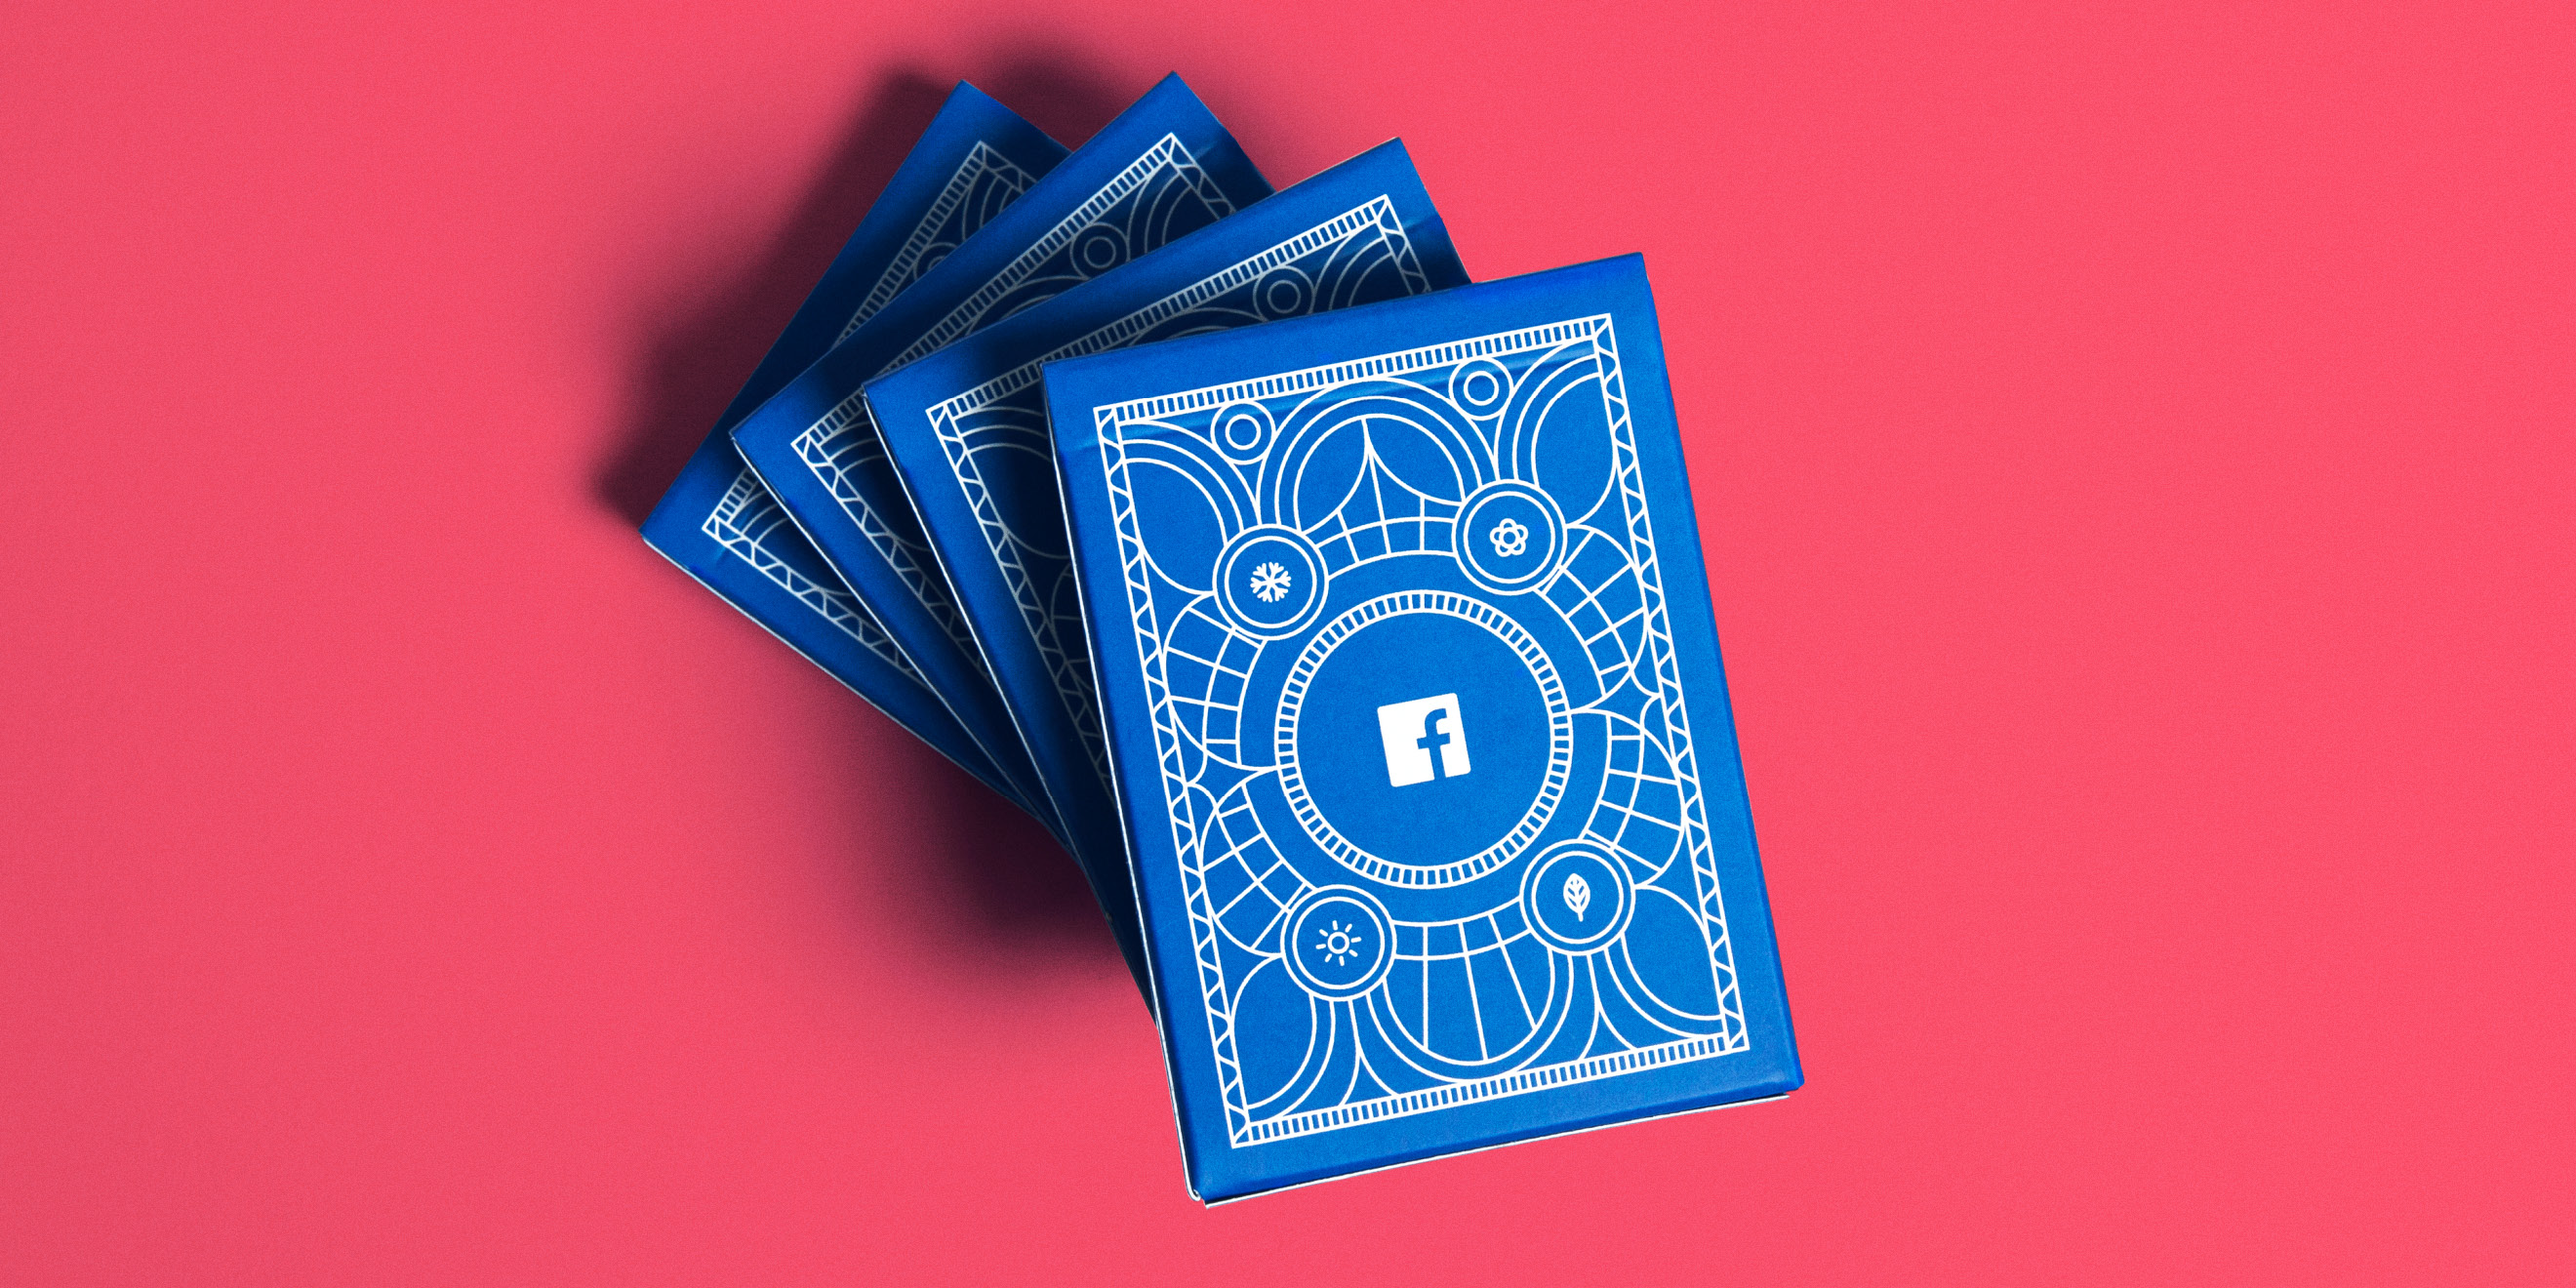 Boxes of Facebook B2B marketing insights playing cards by Human After All